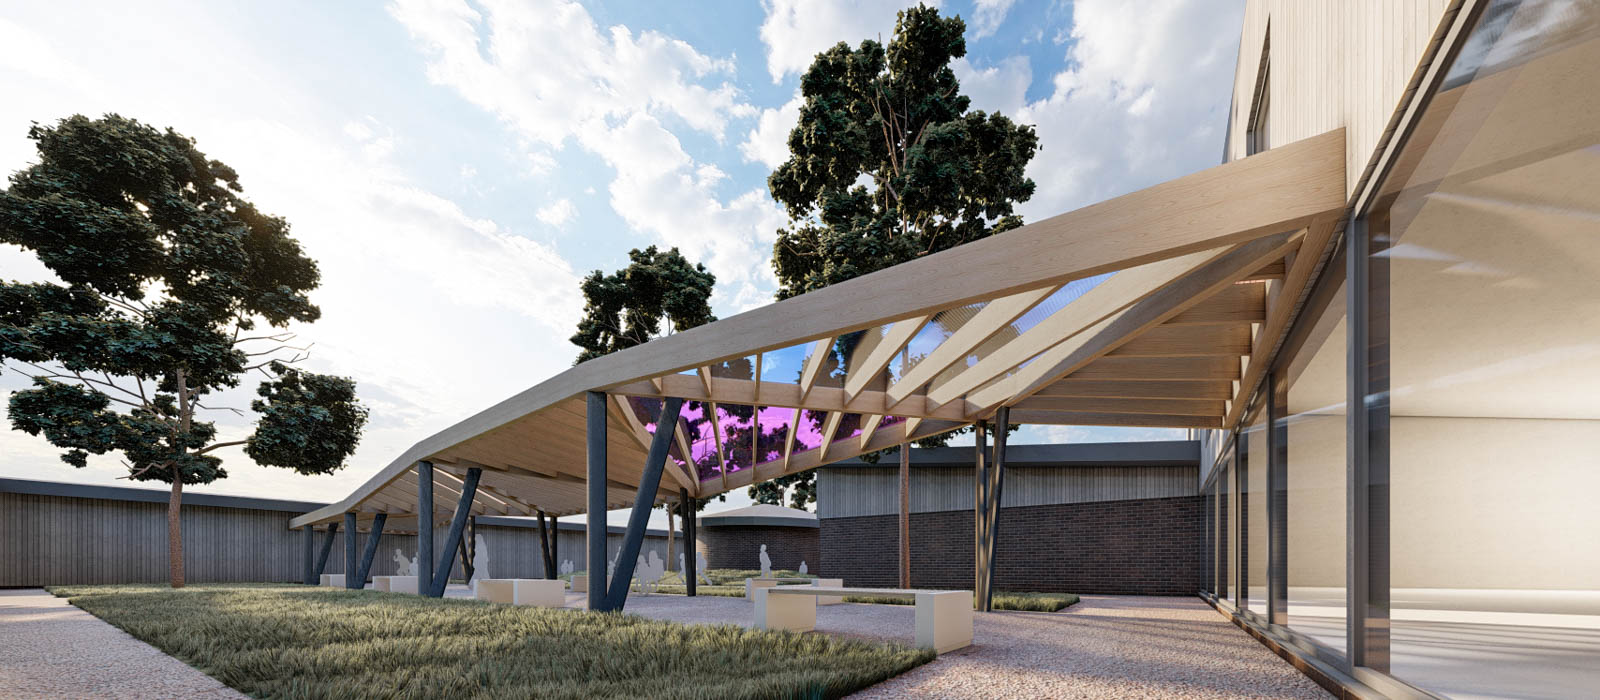 gyd-architecture   organic covered spaces